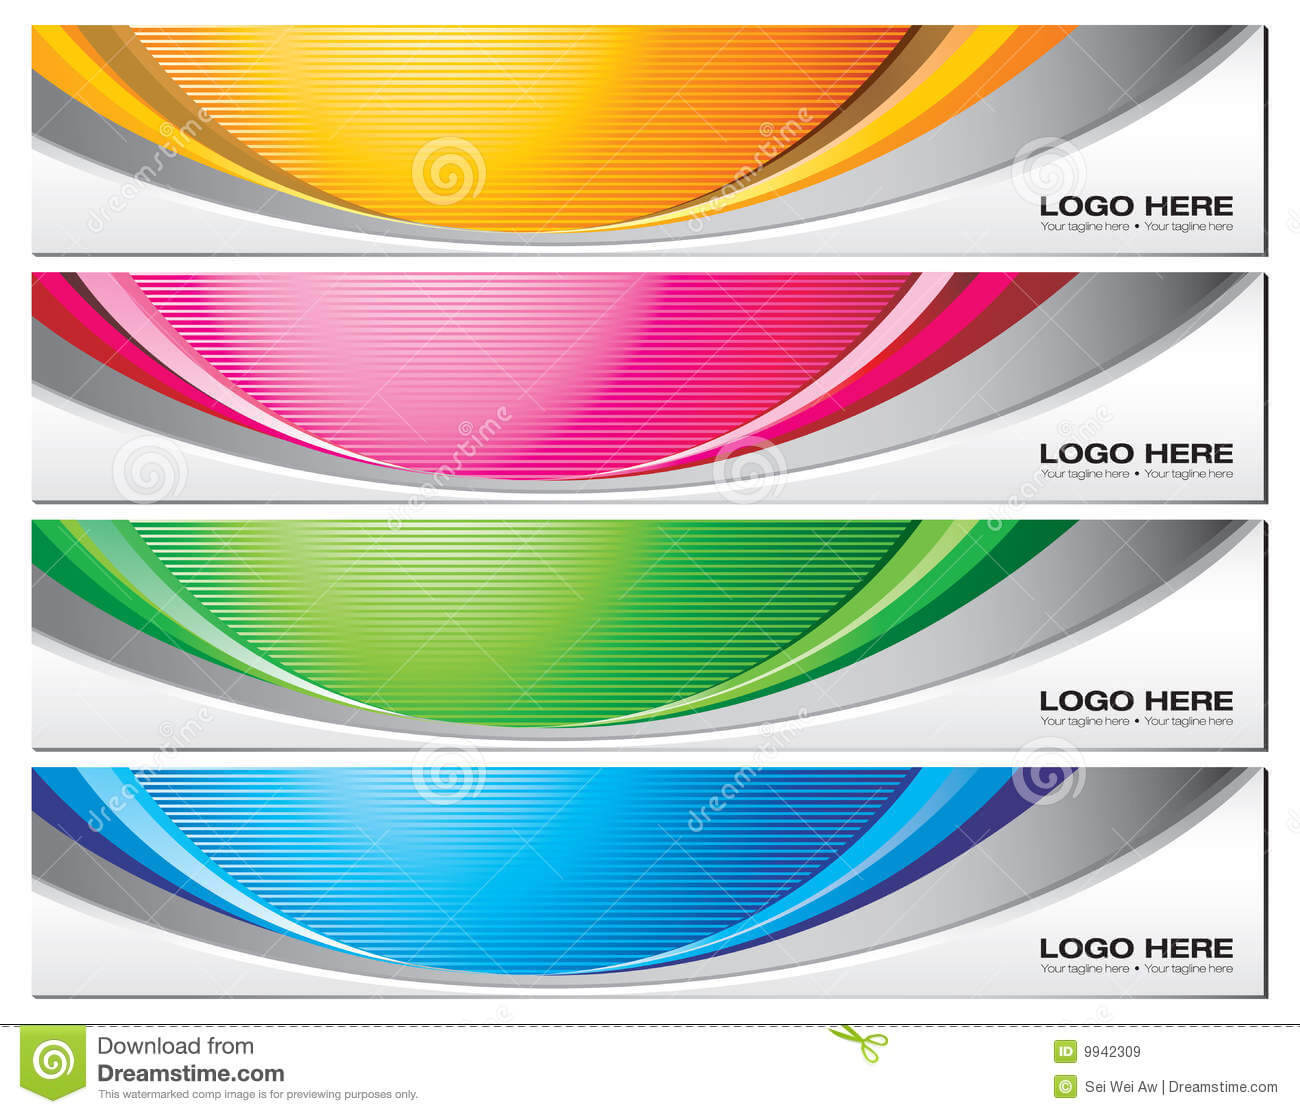 Banner Templates Stock Vector. Illustration Of Vector - 9942309 Intended For Free Online Banner Templates